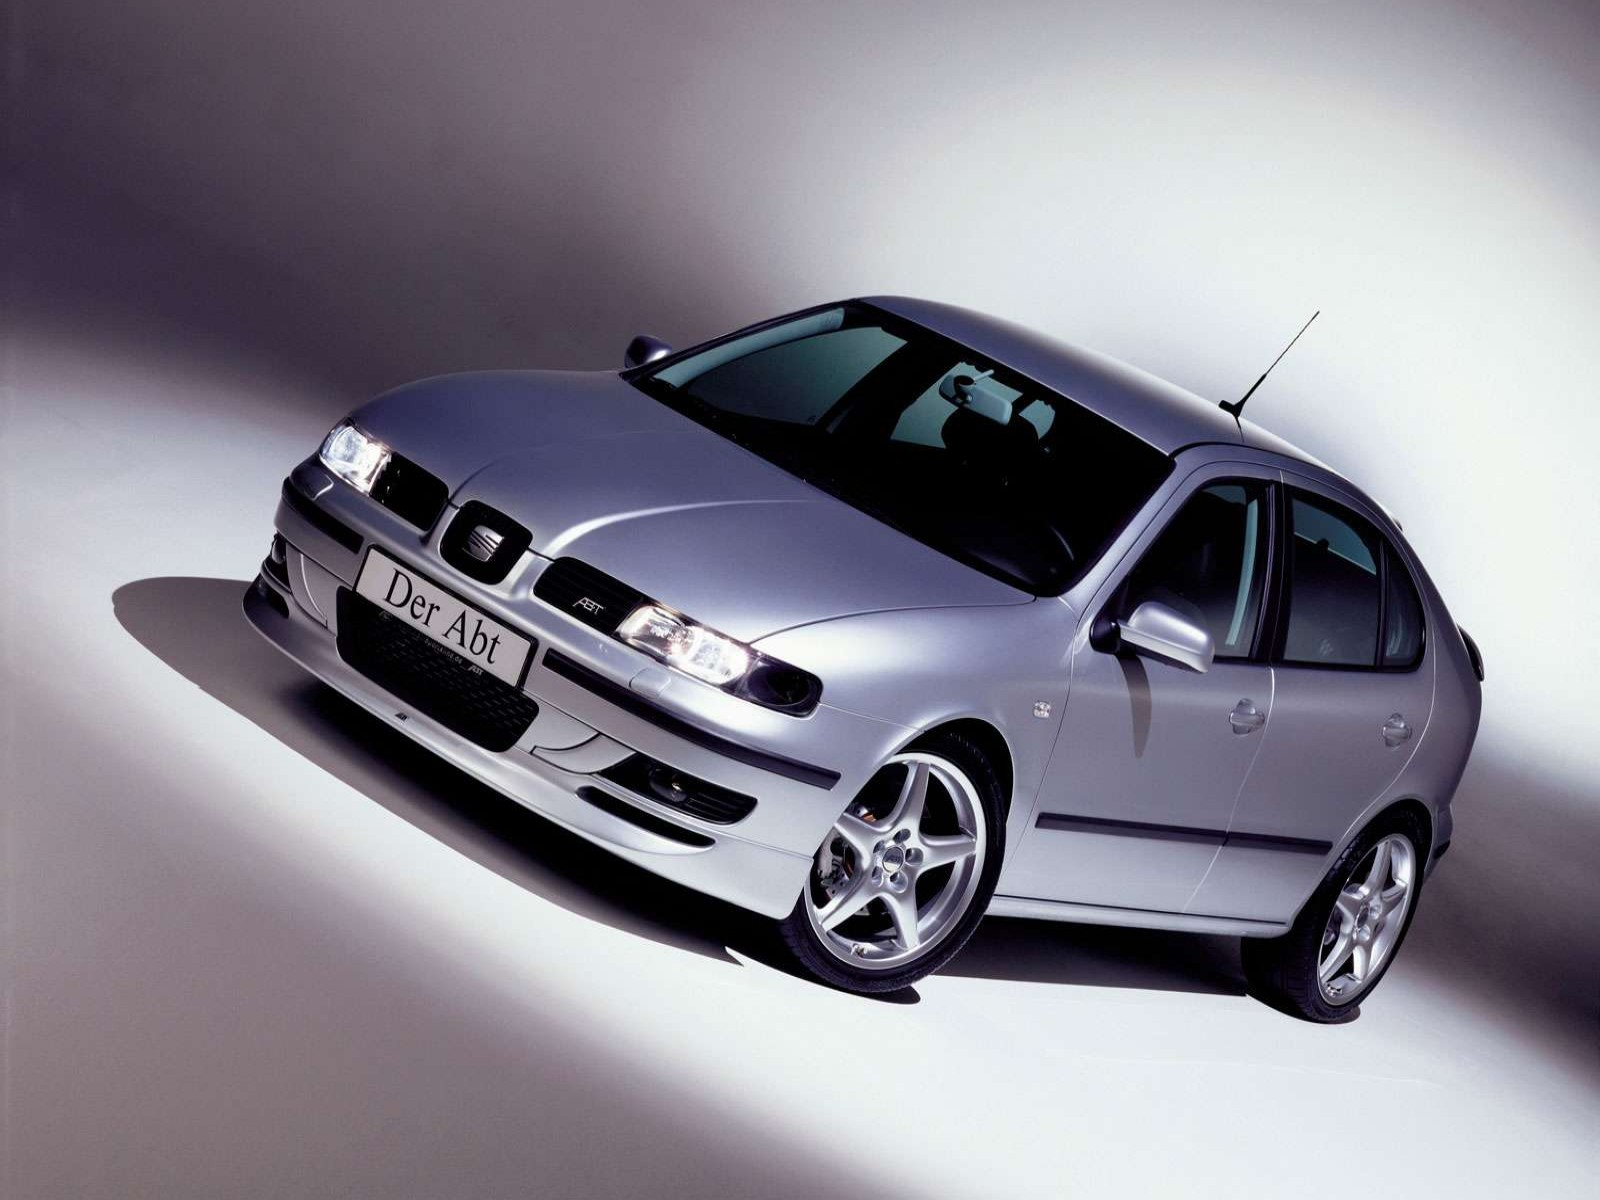 http://4.bp.blogspot.com/-inxPrVKXZ6o/Tc6nYQ9d3WI/AAAAAAAAACA/n4oXTZk4xso/s1600/2002+ABT+Seat+Leon+-+Car+Photo+Wallpaper.jpg